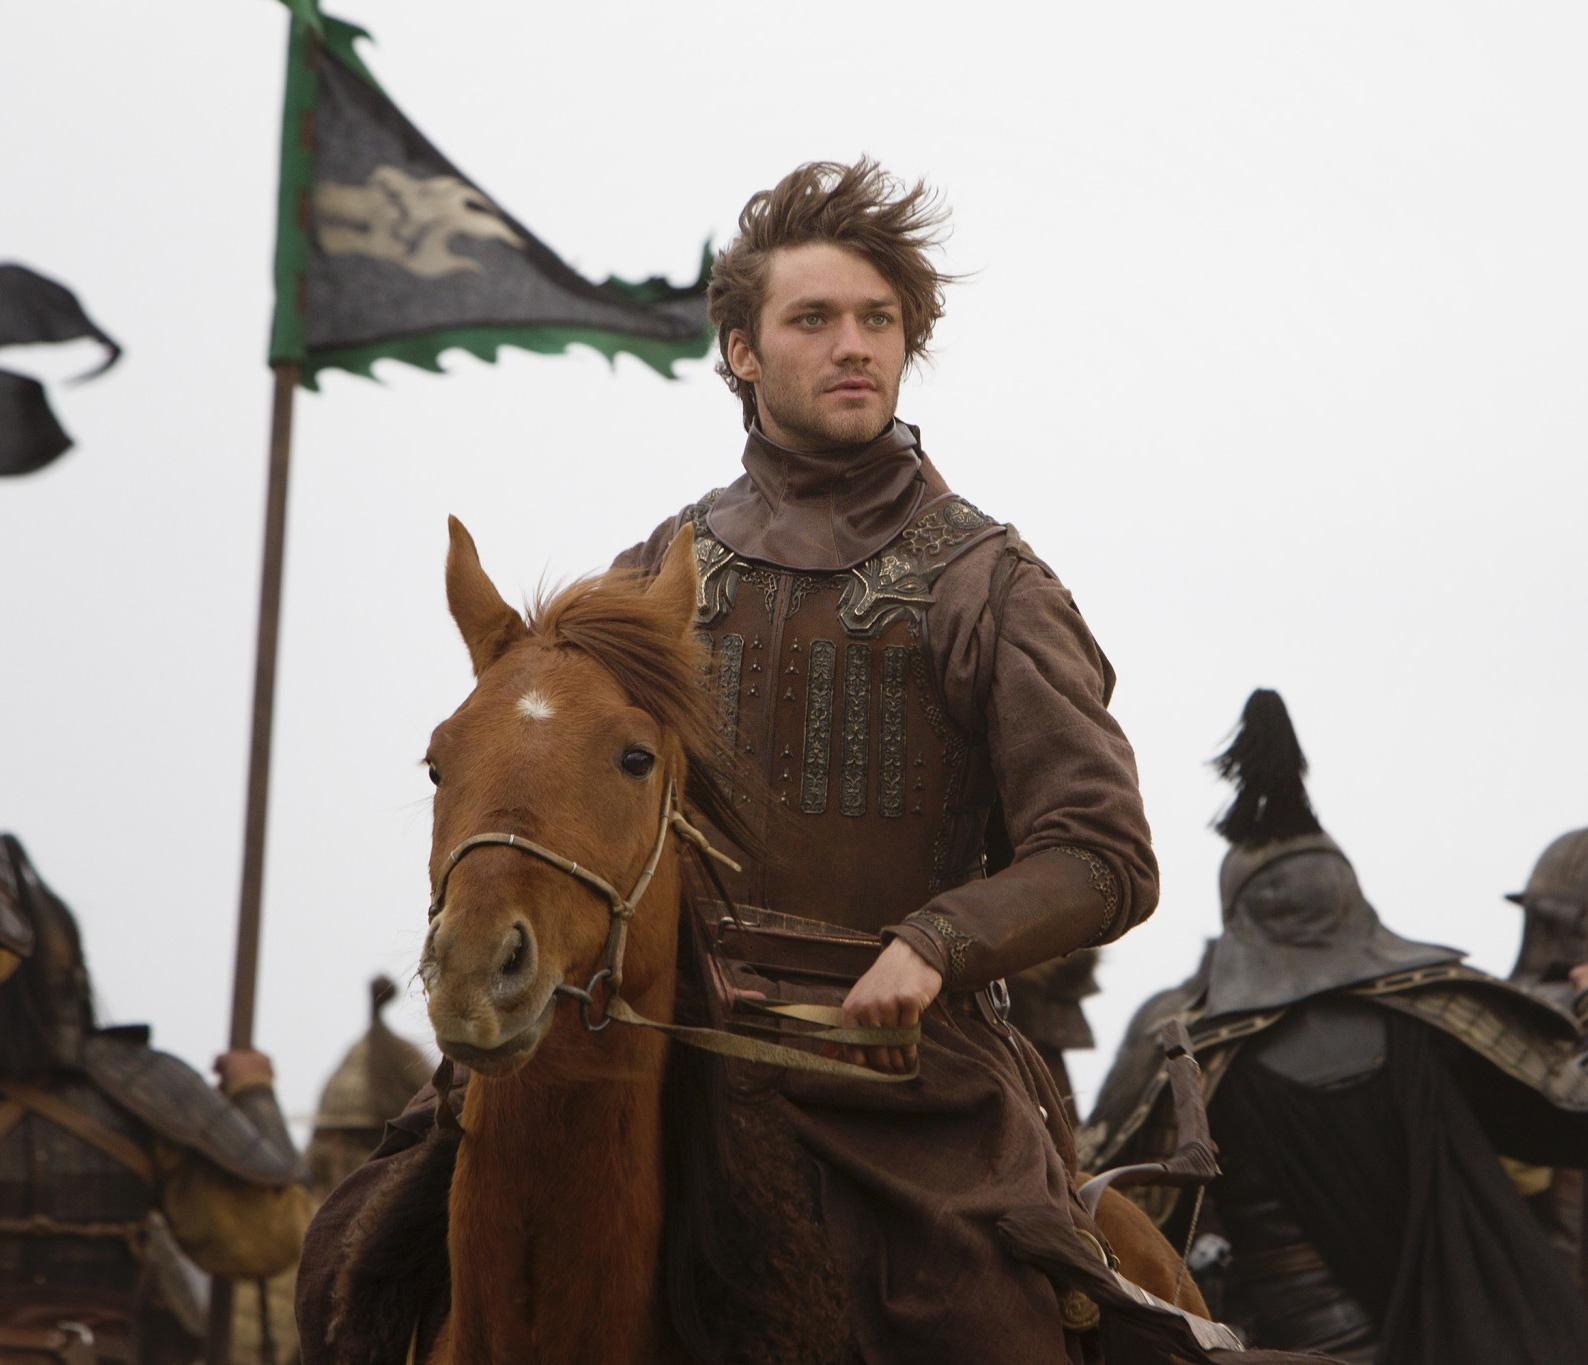 Date set for Netflix's Marco Polo premiere